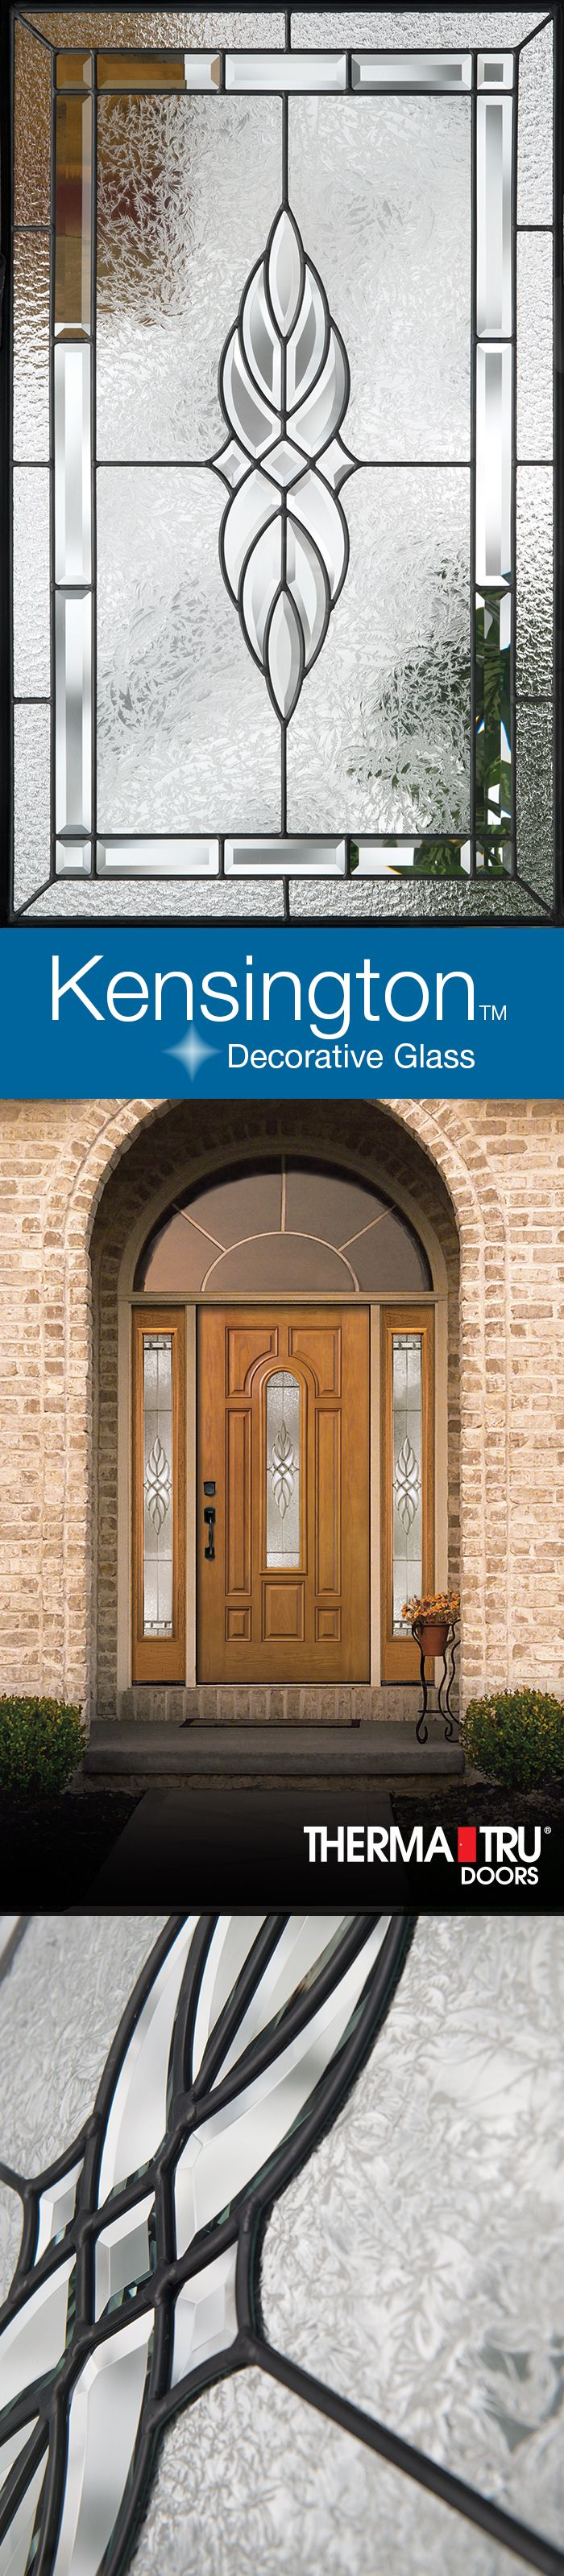 Kensington decorative glass brings European elegance to the entry door. | Glass Design | Pinterest | Decorative glass Doors and Glass & Kensington decorative glass brings European elegance to the entry ...